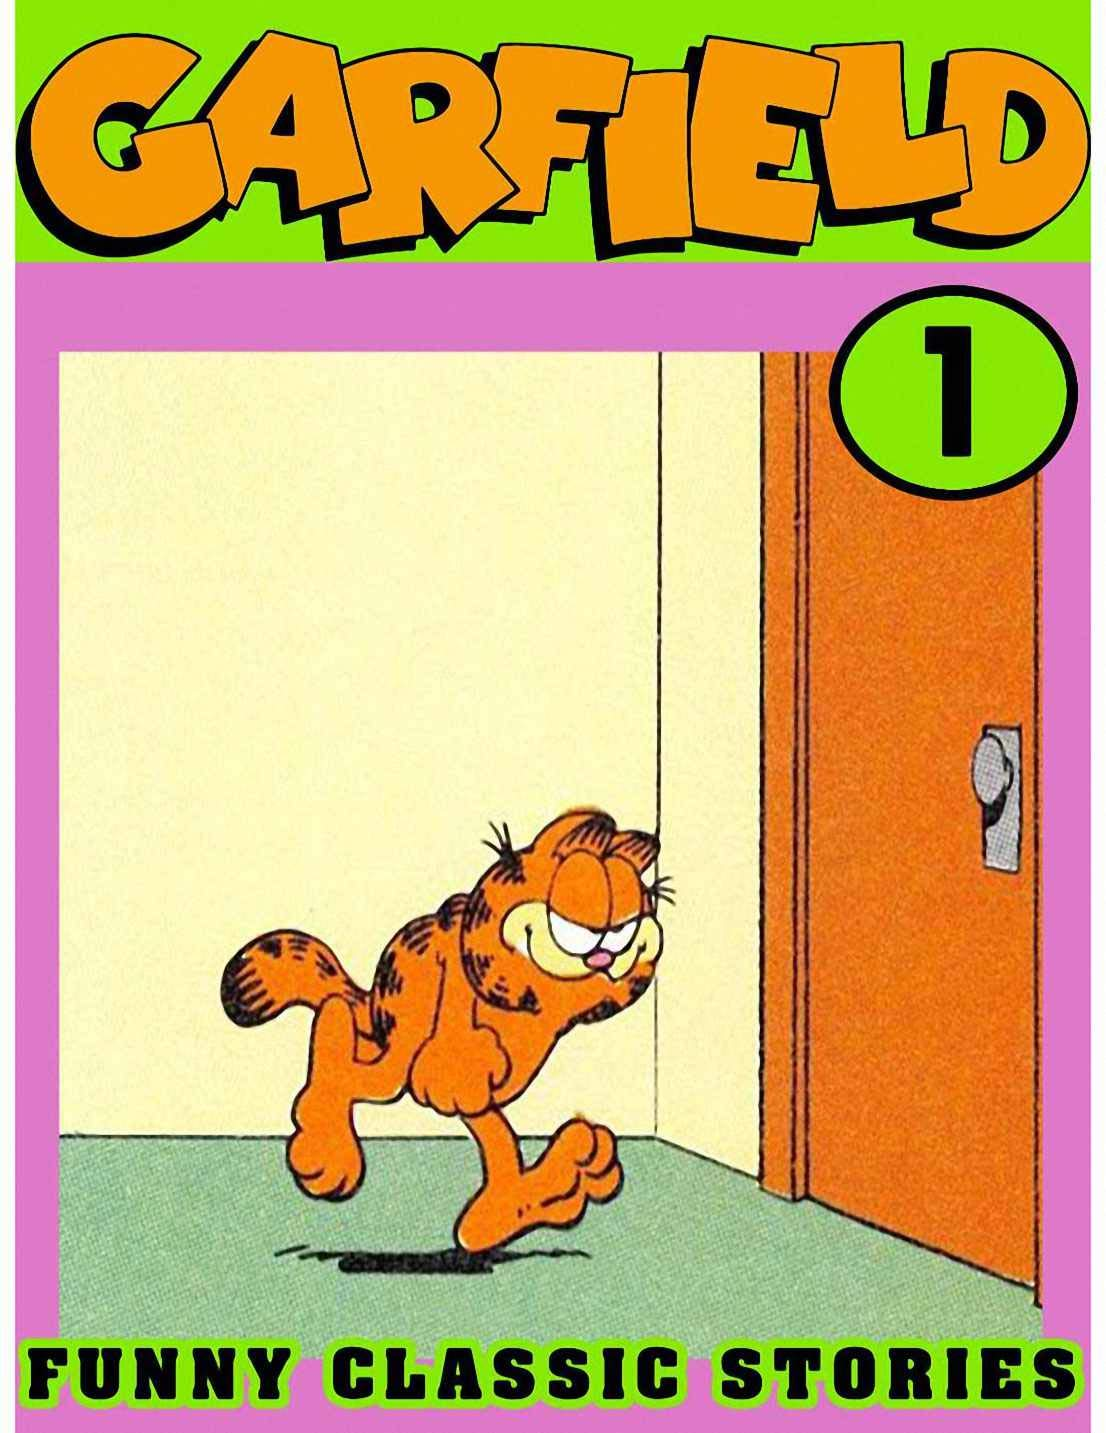 Funny Classic: Collection 1 - Garfield Comic Strips - Lazy Fat Cat Cartoon